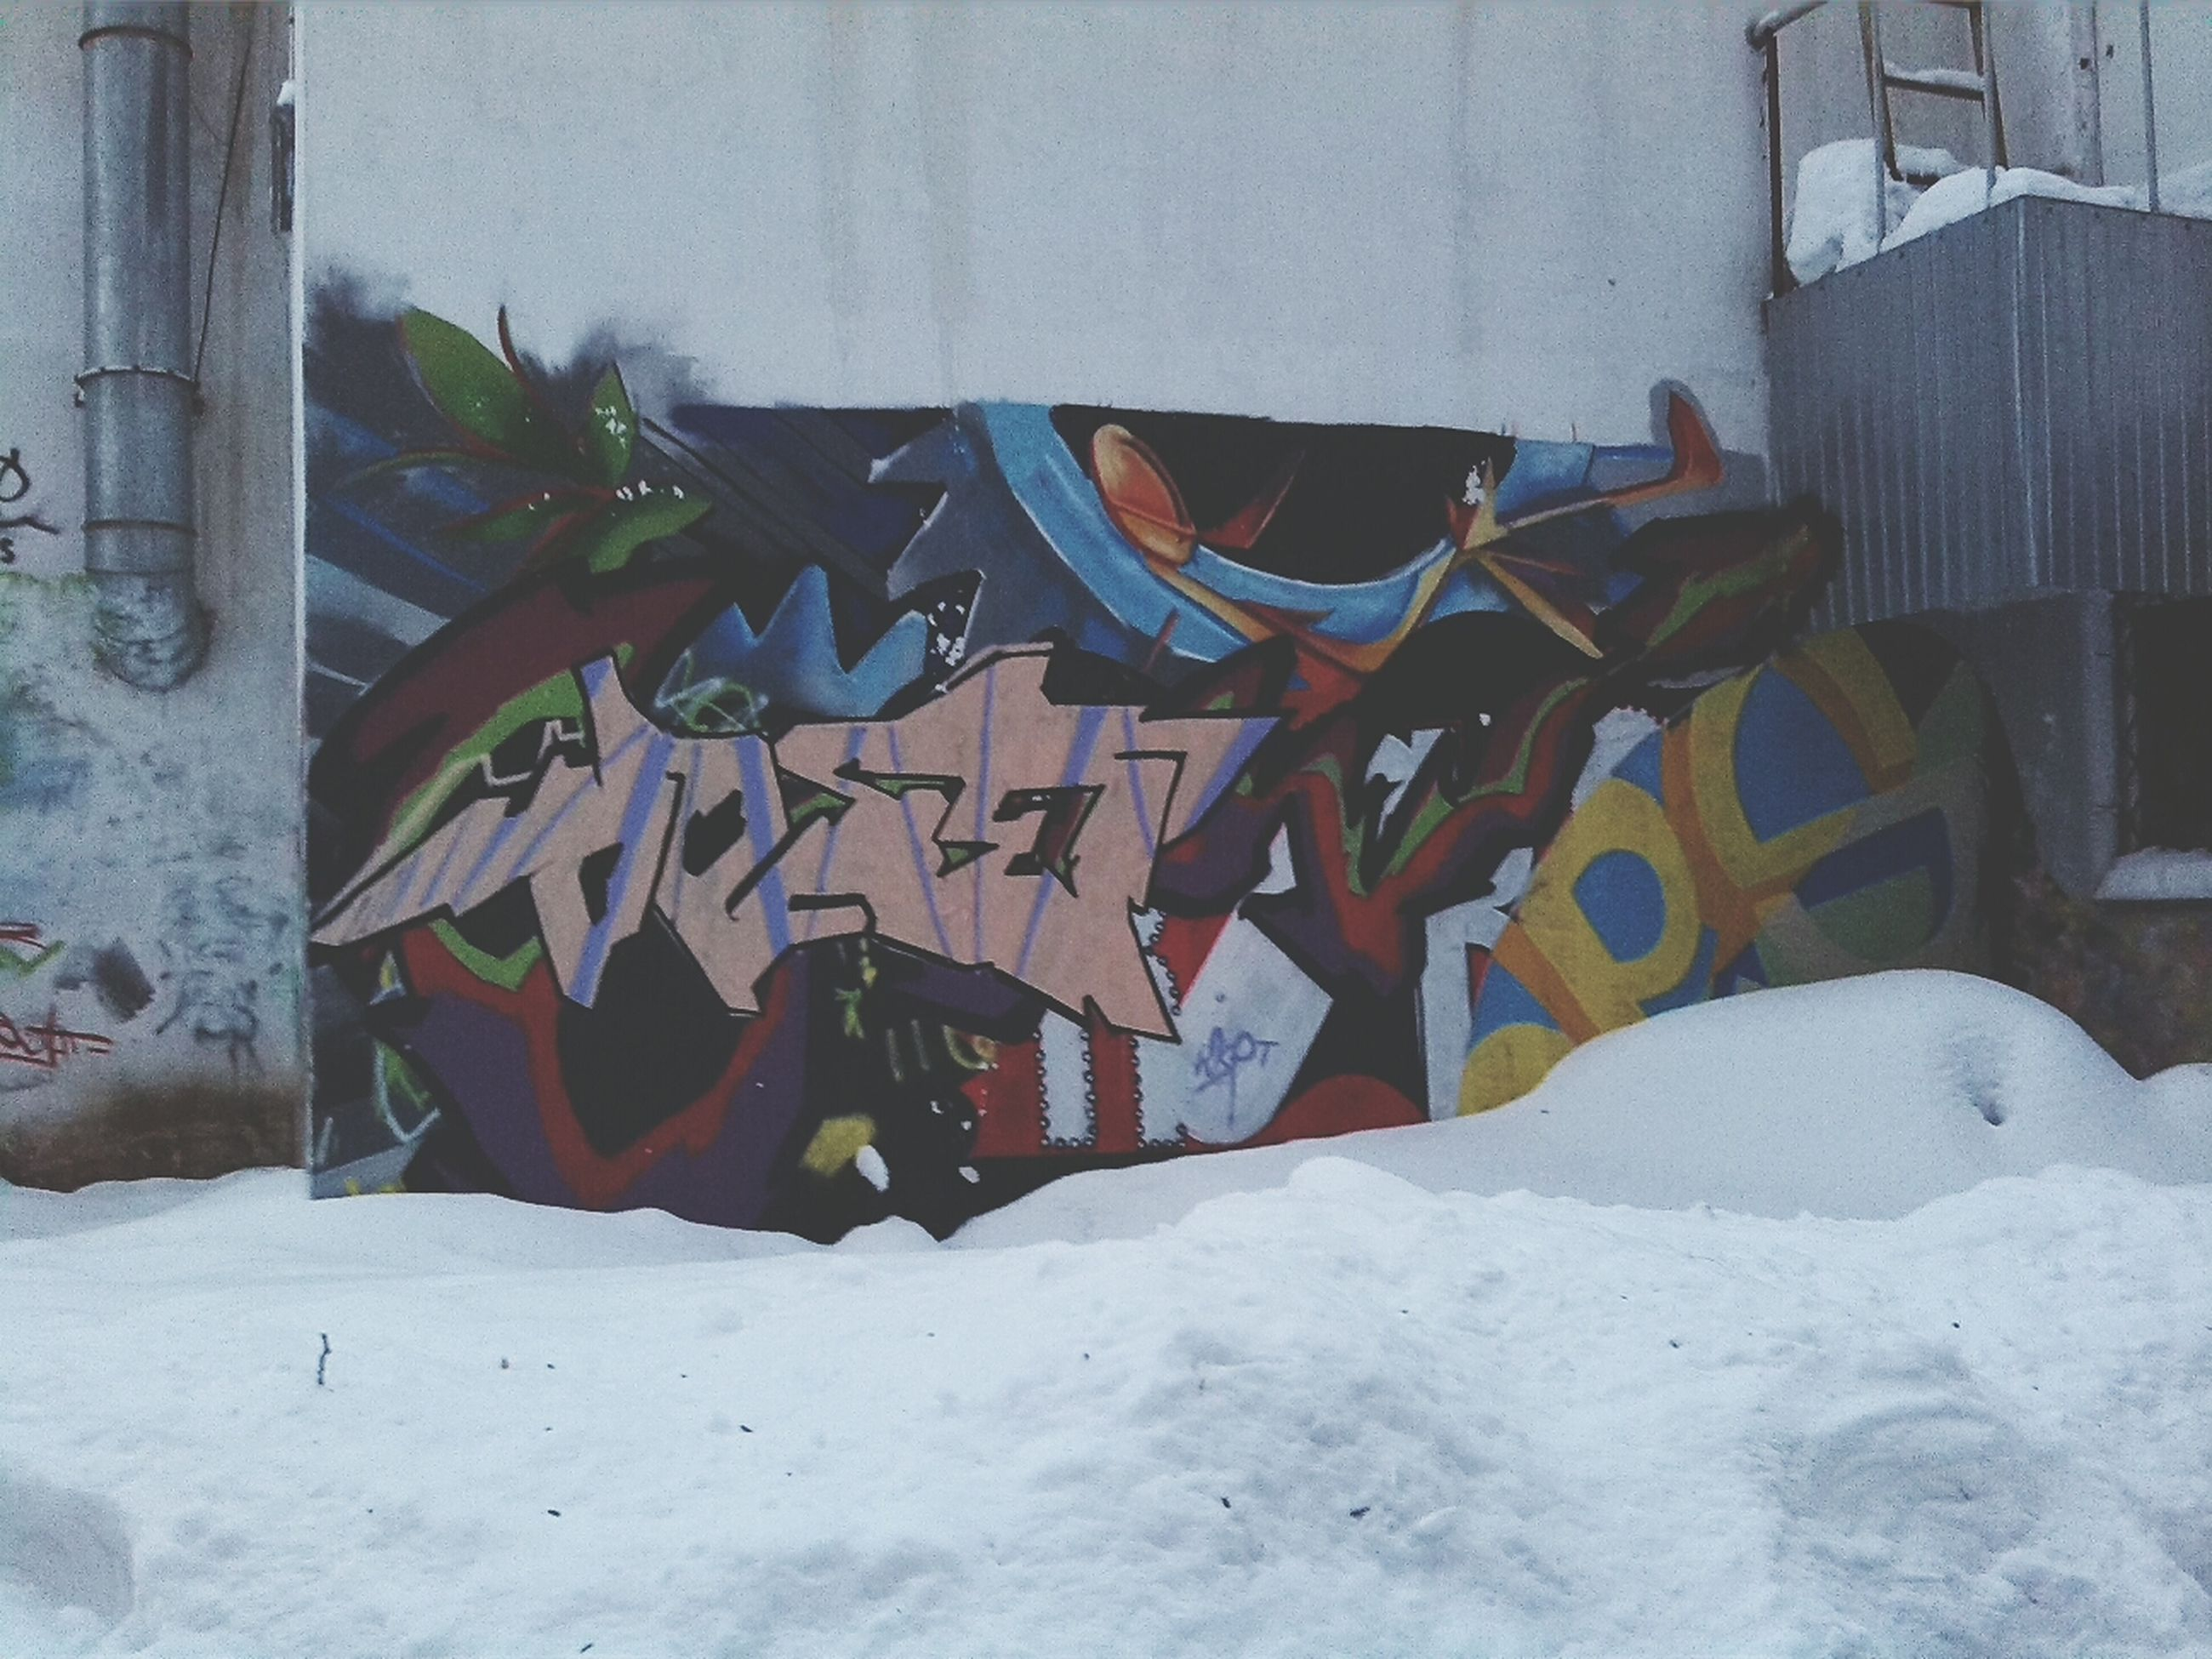 snow, winter, architecture, built structure, cold temperature, building exterior, covering, house, wall - building feature, season, white color, weather, day, graffiti, no people, outdoors, covered, field, nature, wall